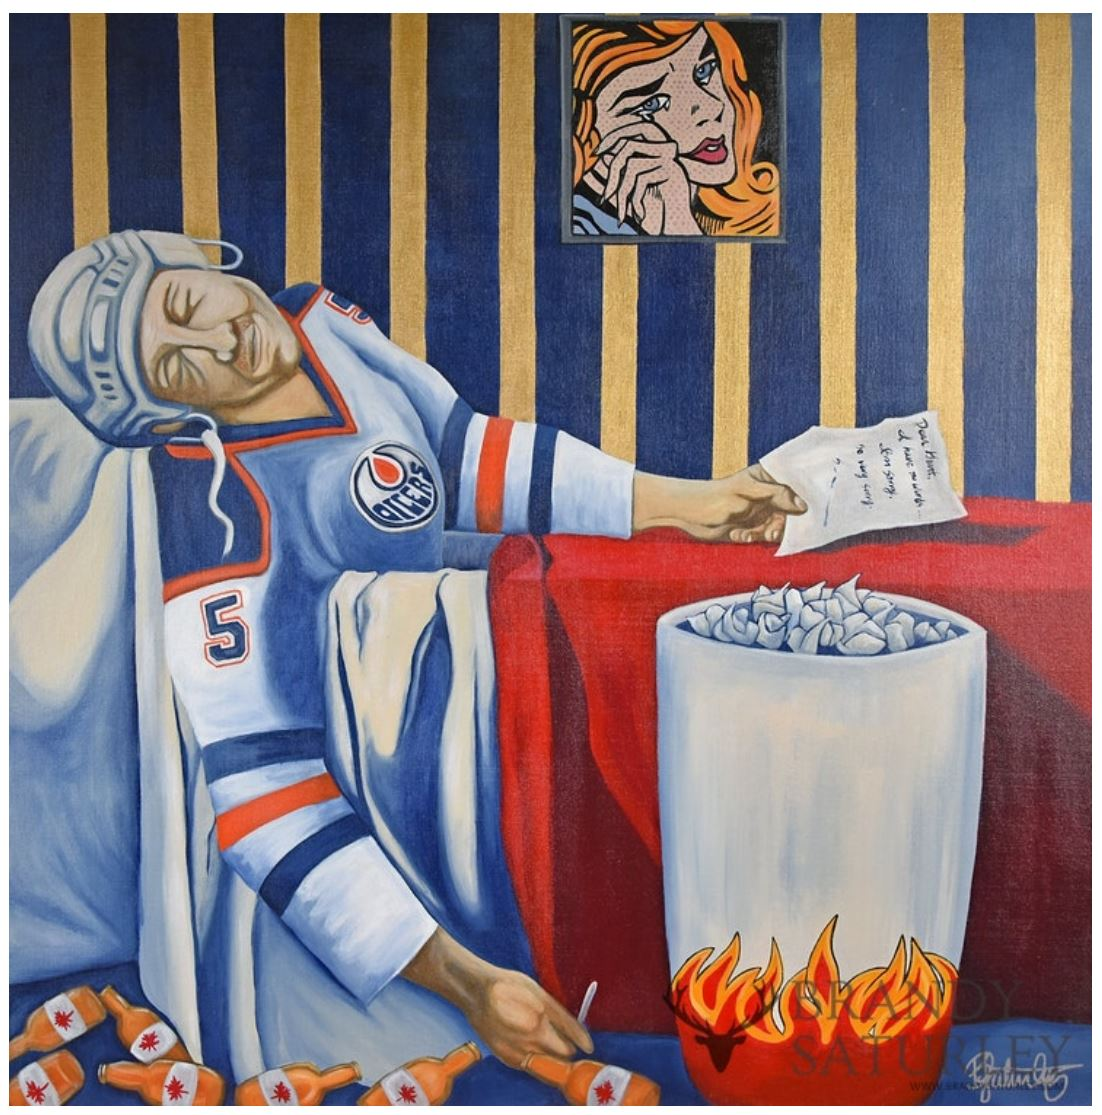 the legend of Steve Smith Death of a Rookie painting by Brandy Saturley